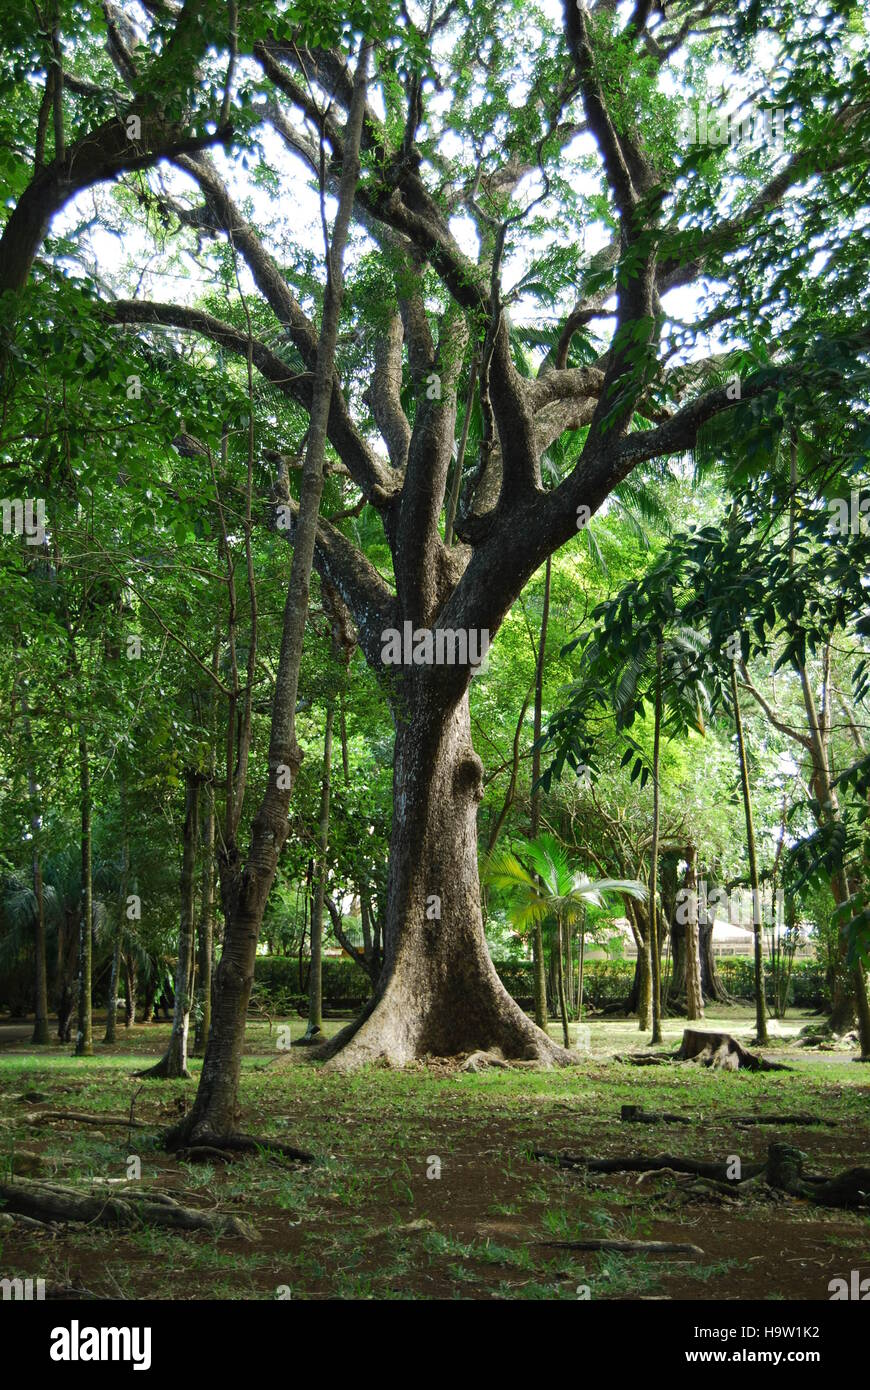 big tree with wide roots - Stock Image